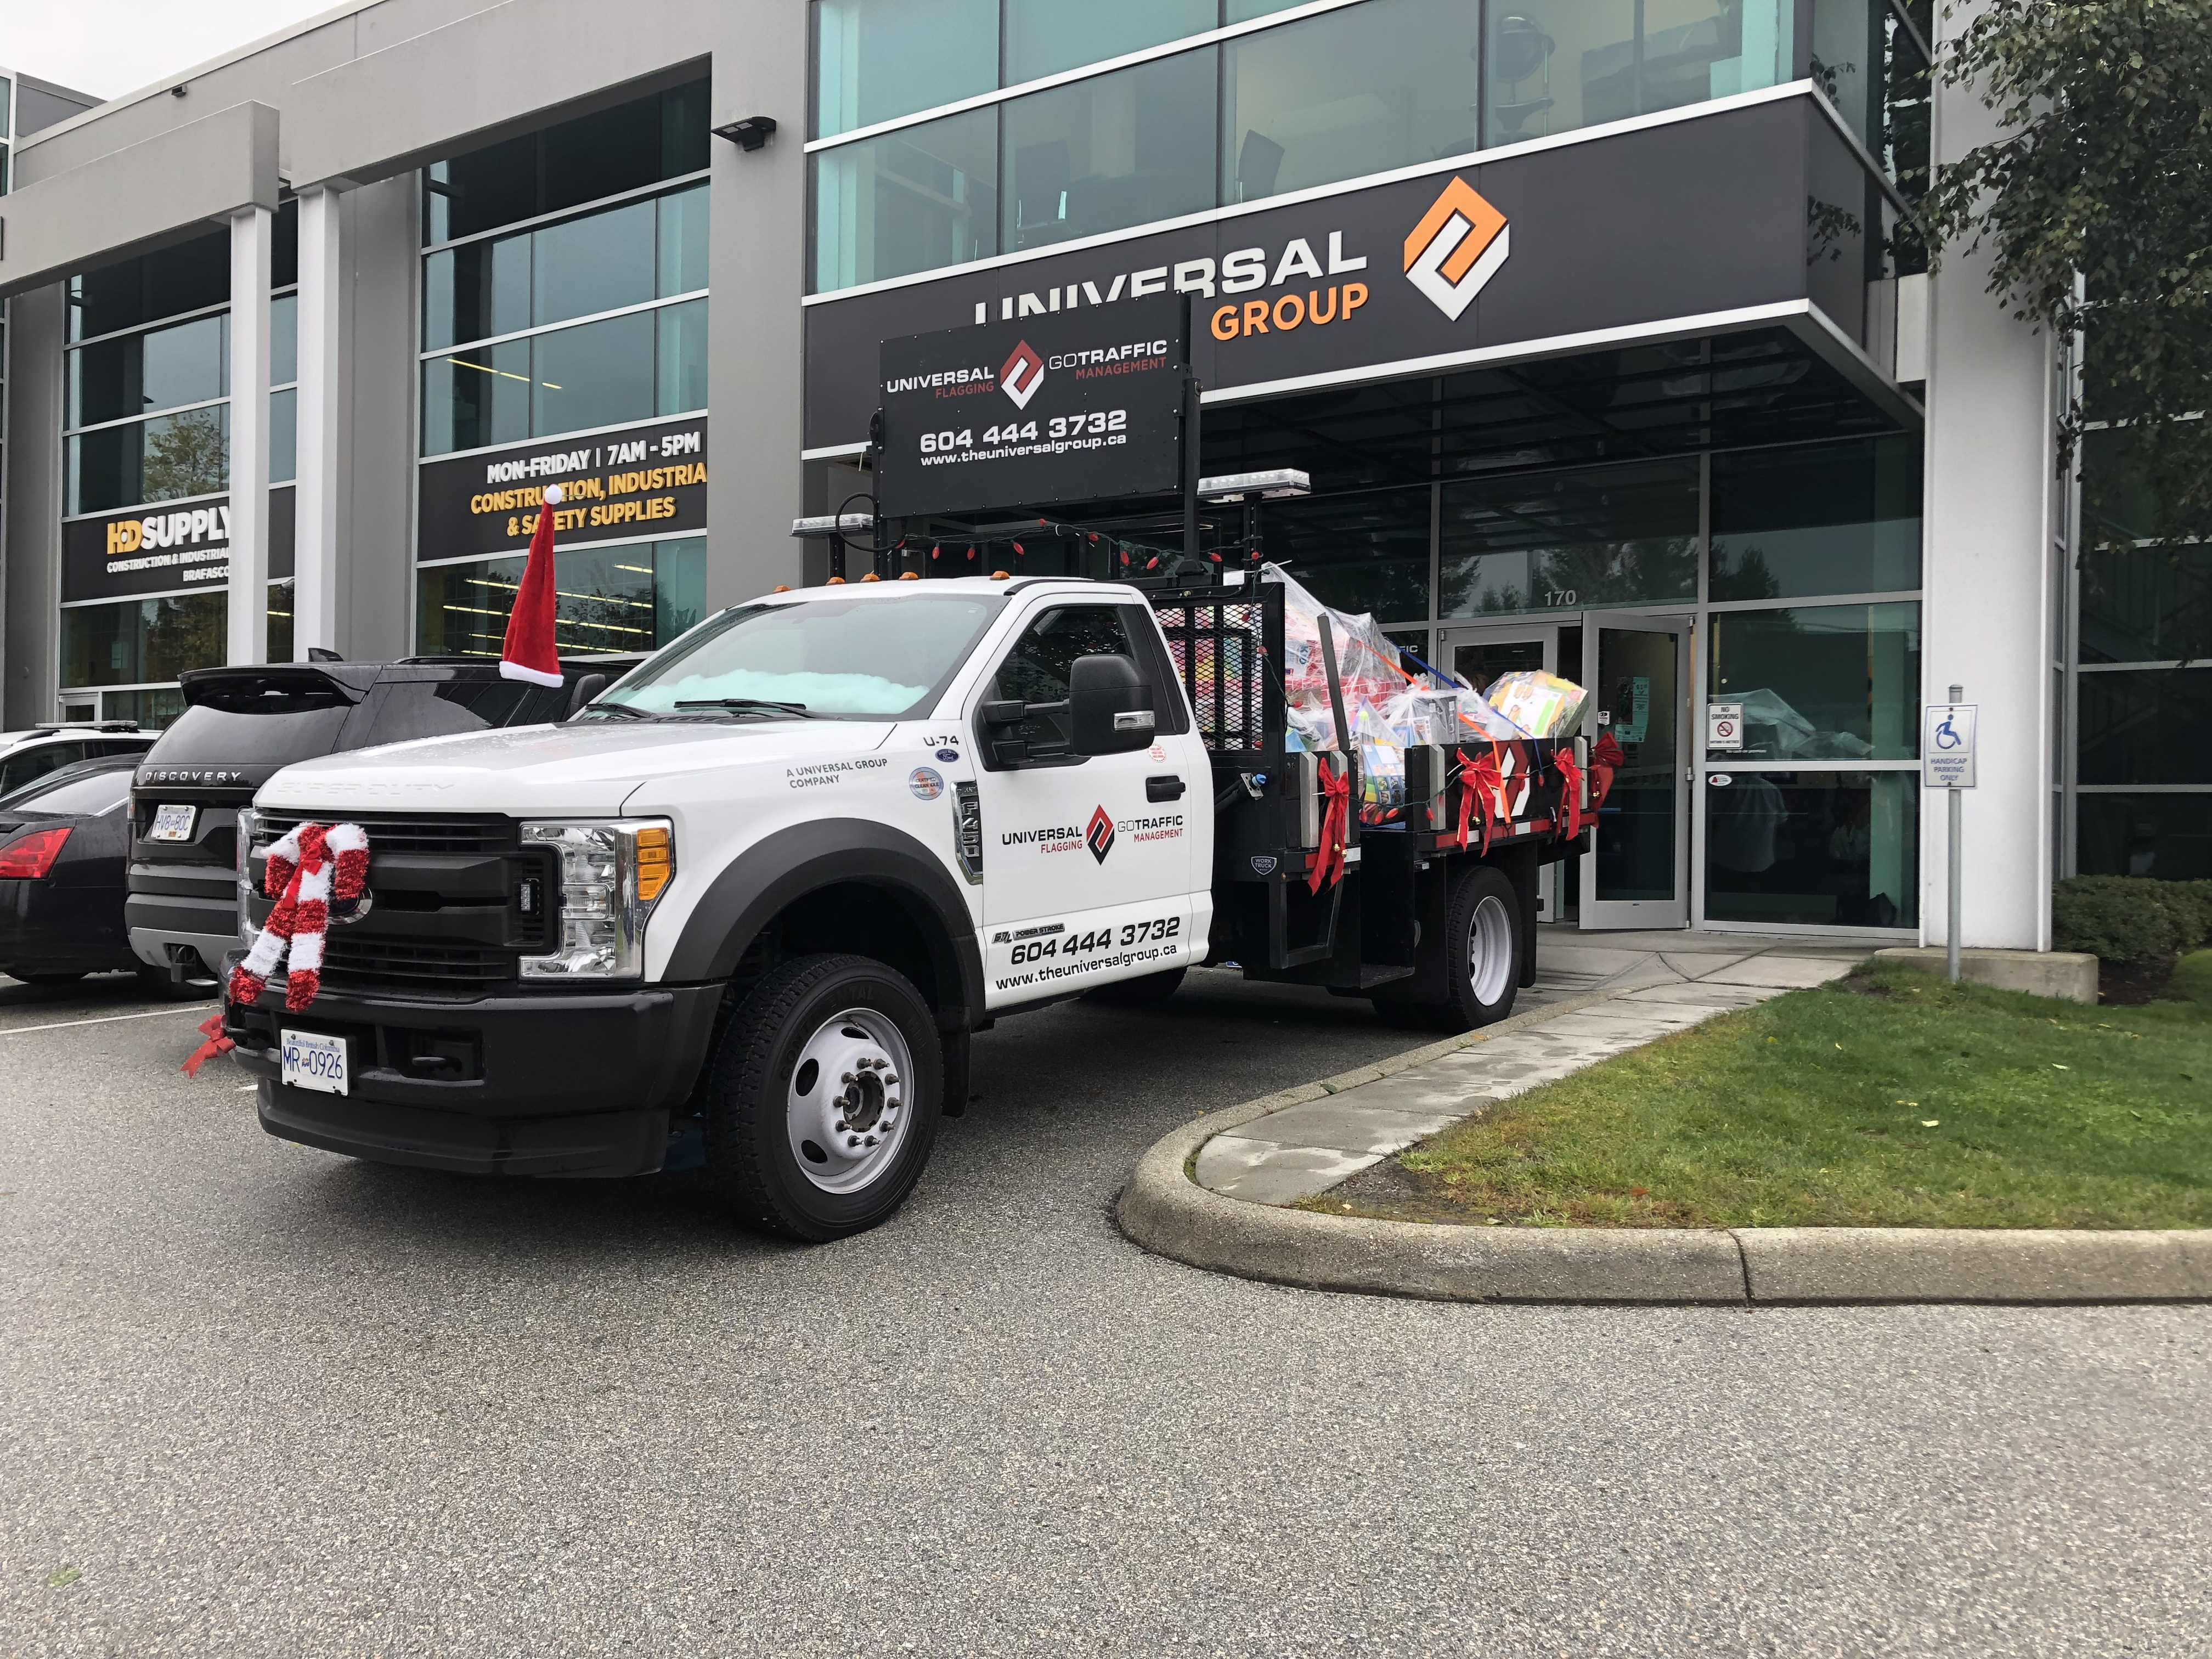 Universal truck brings toys for kids in need